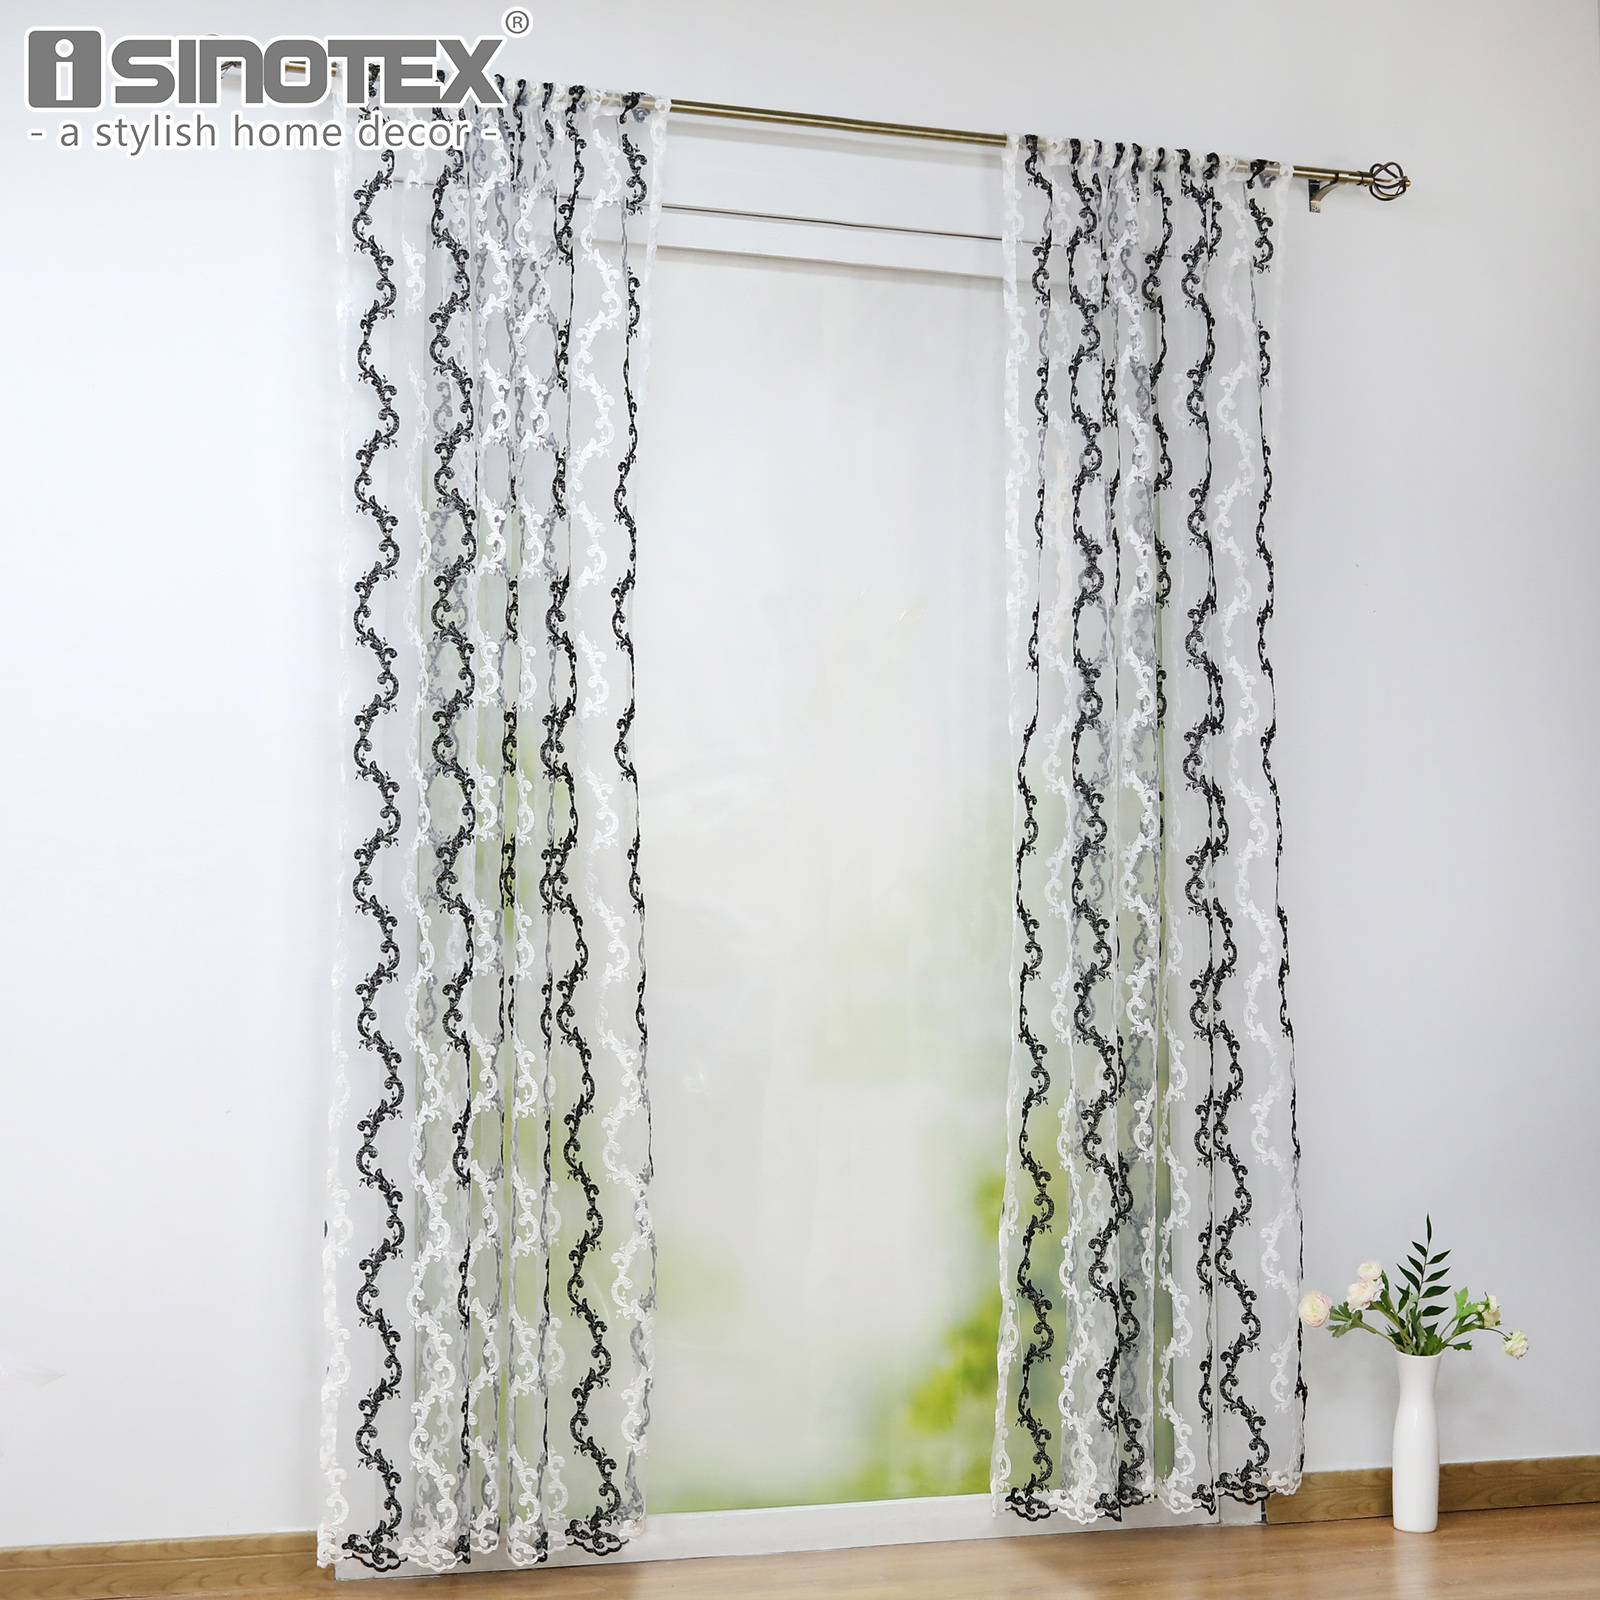 Black White Embroidery Window Screening Curtain Tulle Home ...